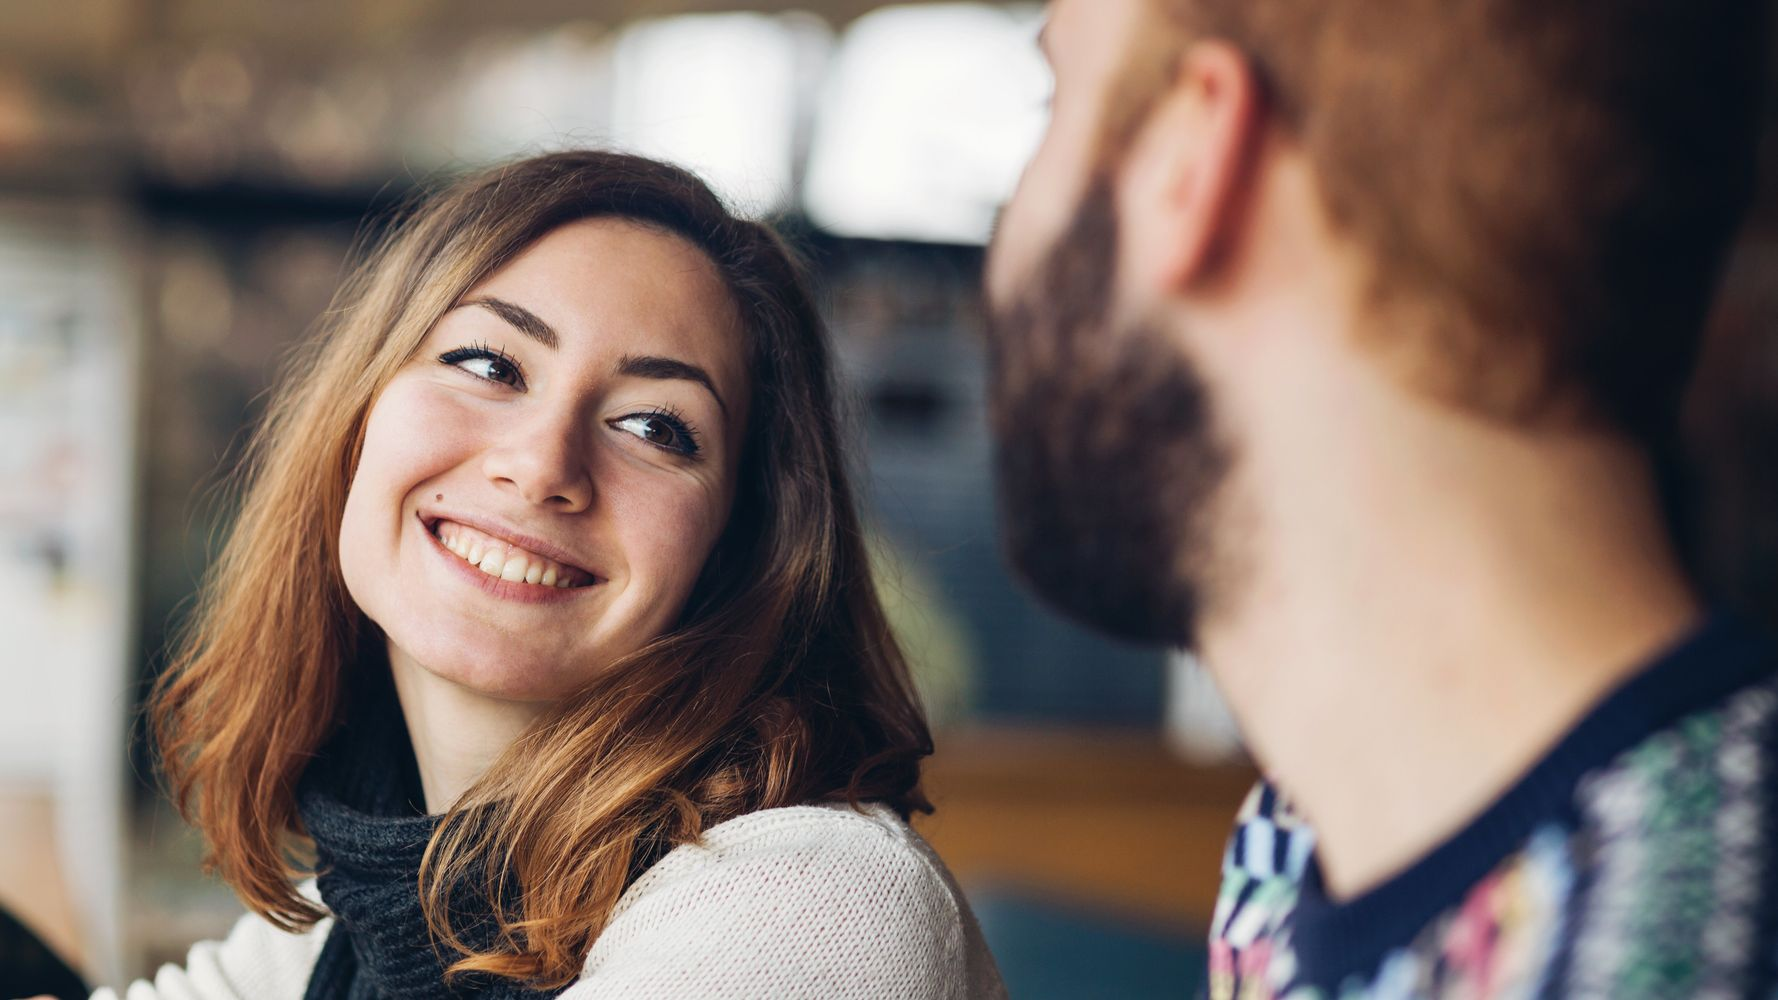 How To Tell Someone Is Flirting With You (And Not Just Being